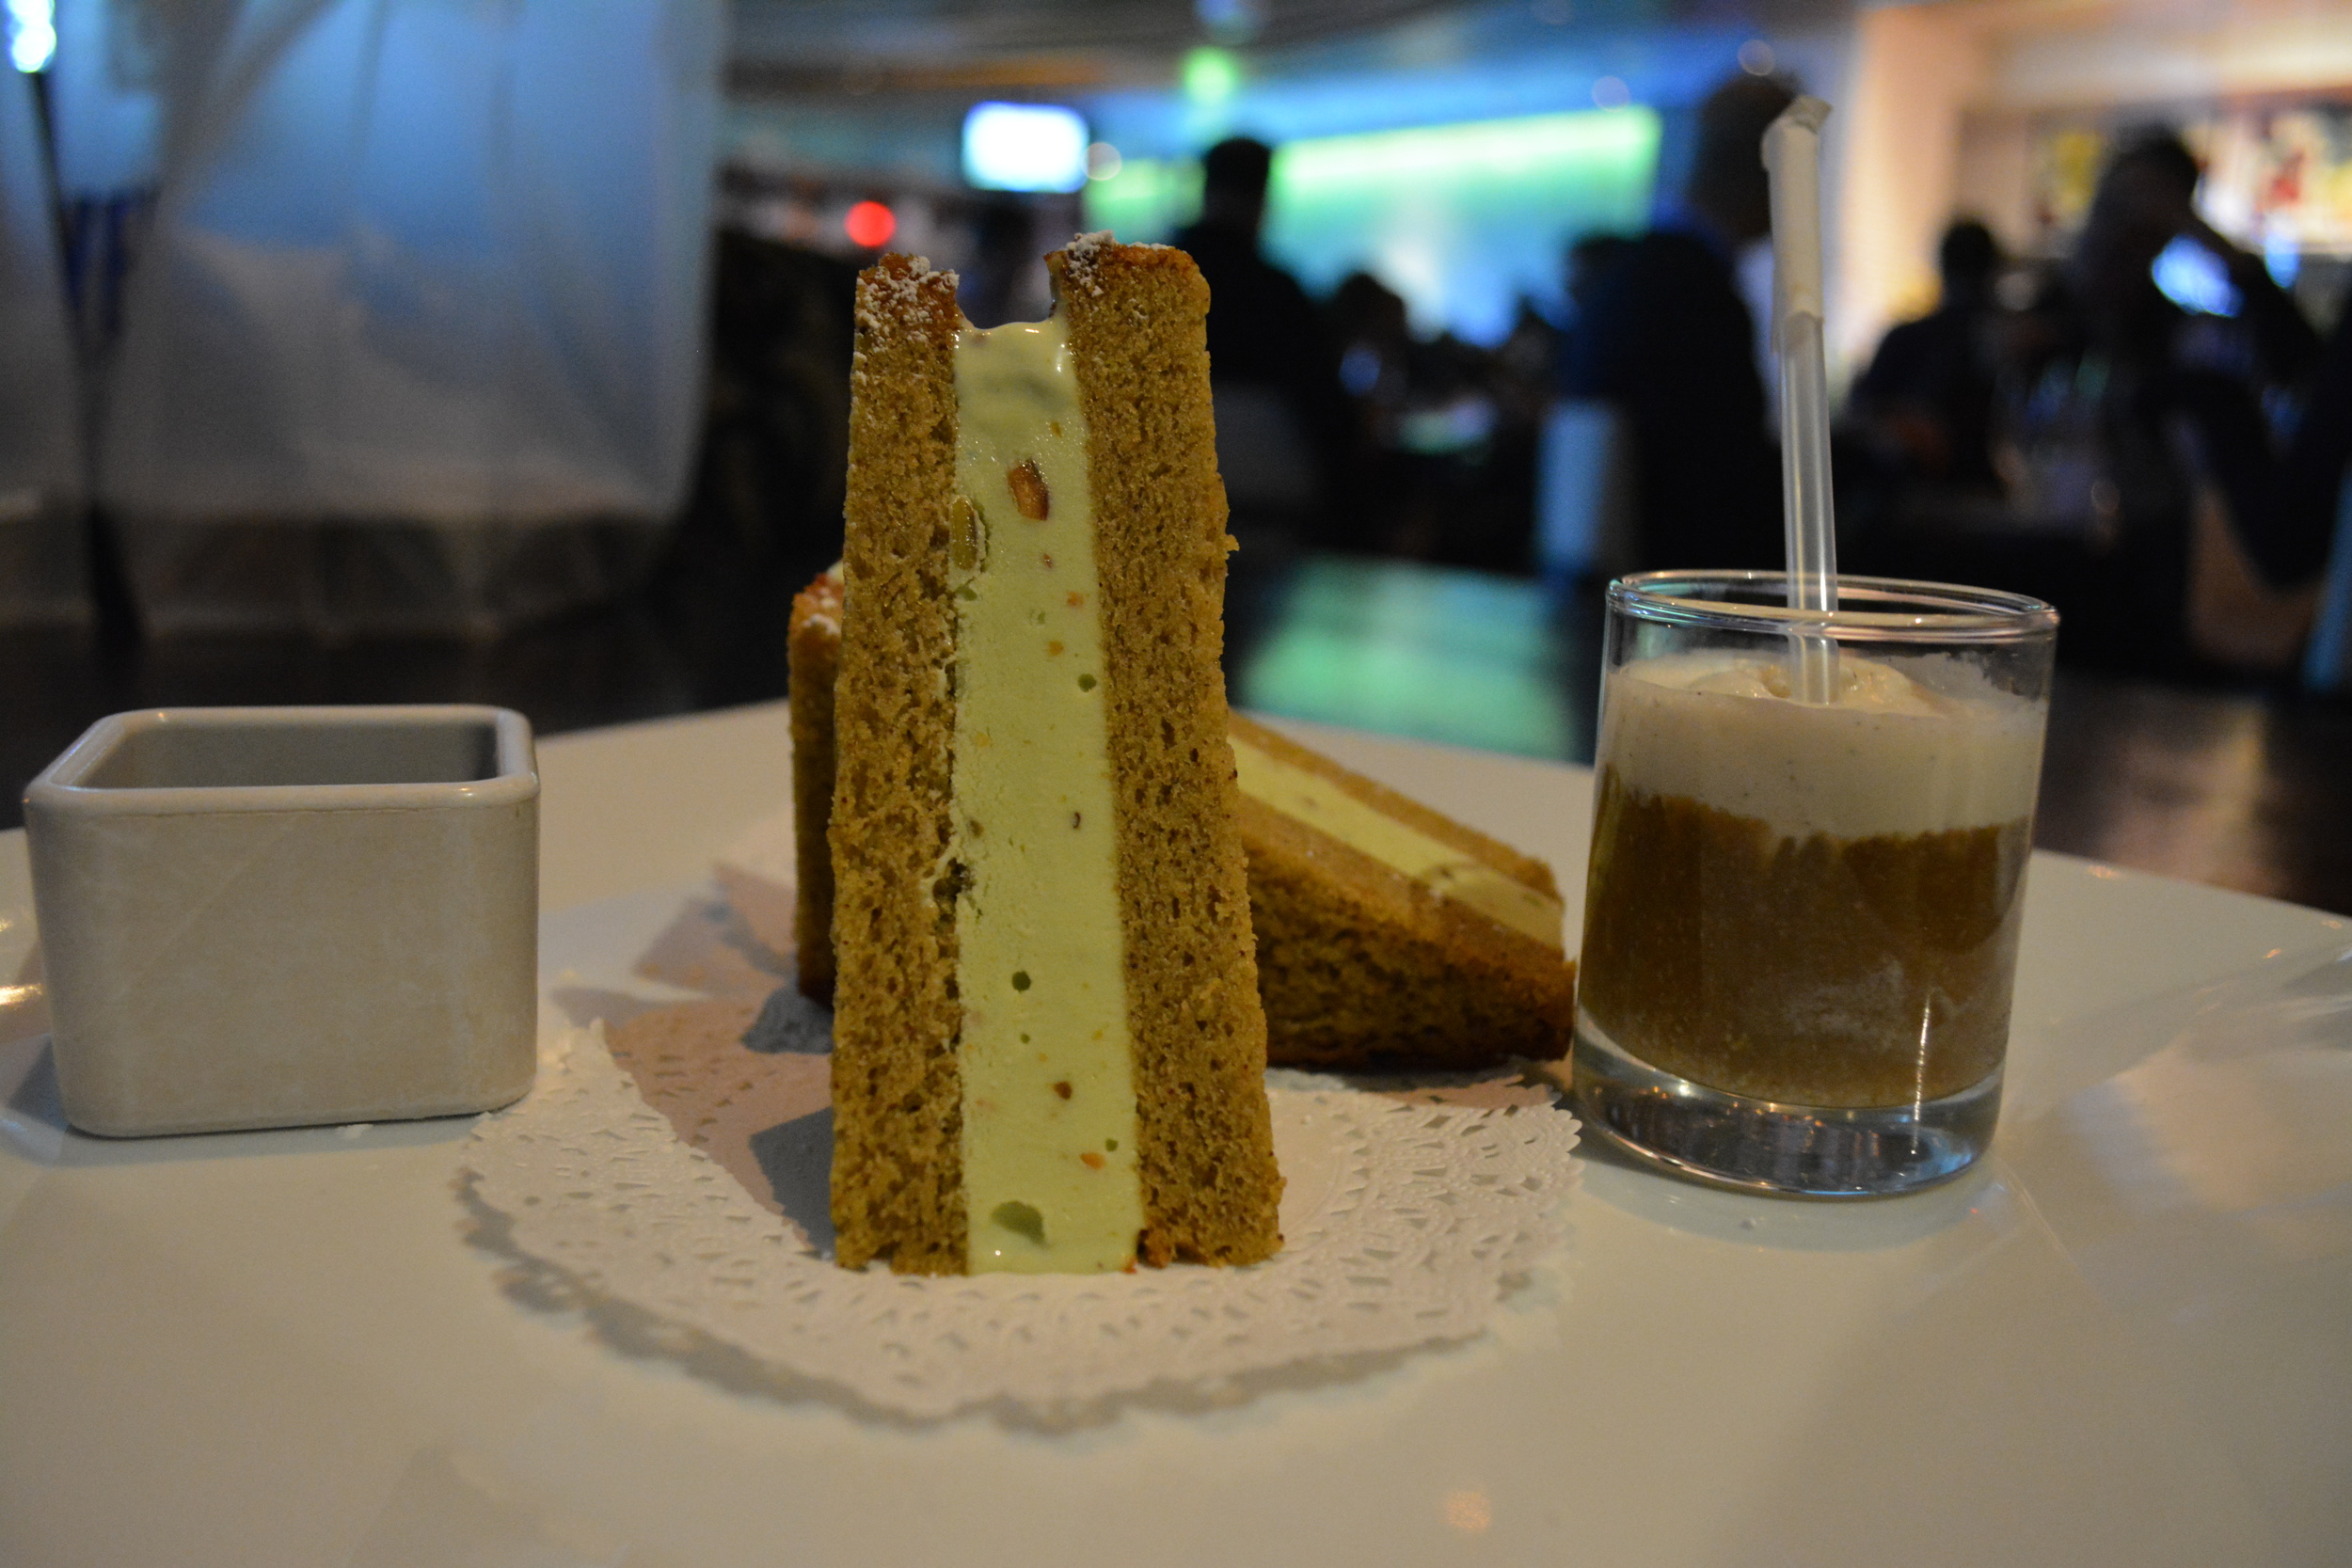 Pistachio gelato sandwiched between slices of pistachio cake is plated with a tiny root beer float.